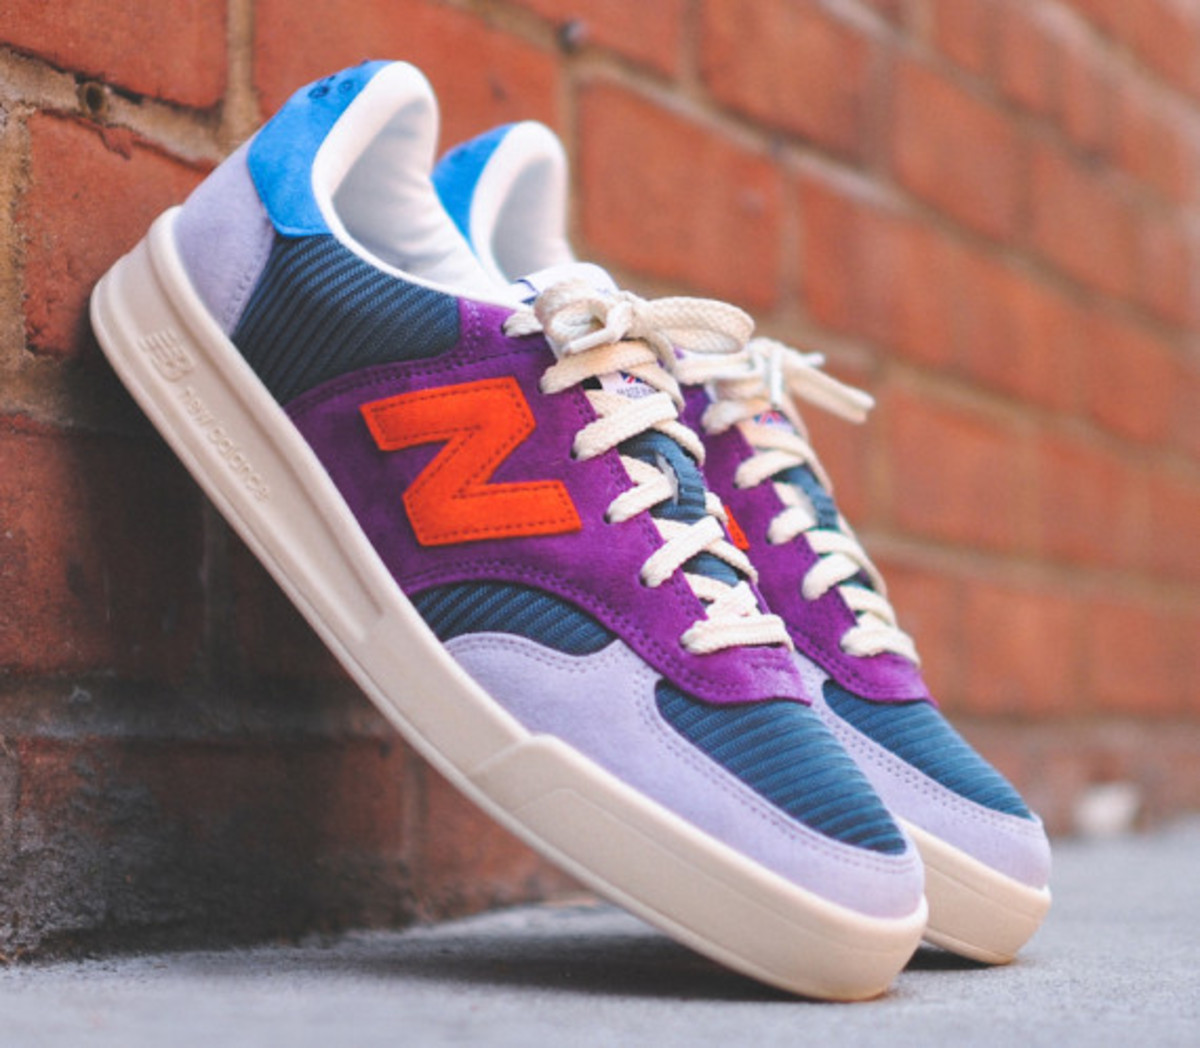 New Balance x 24 Kilates x SneakersNStuff x Hanon x Firmament - CT300 Collection | Available - 8